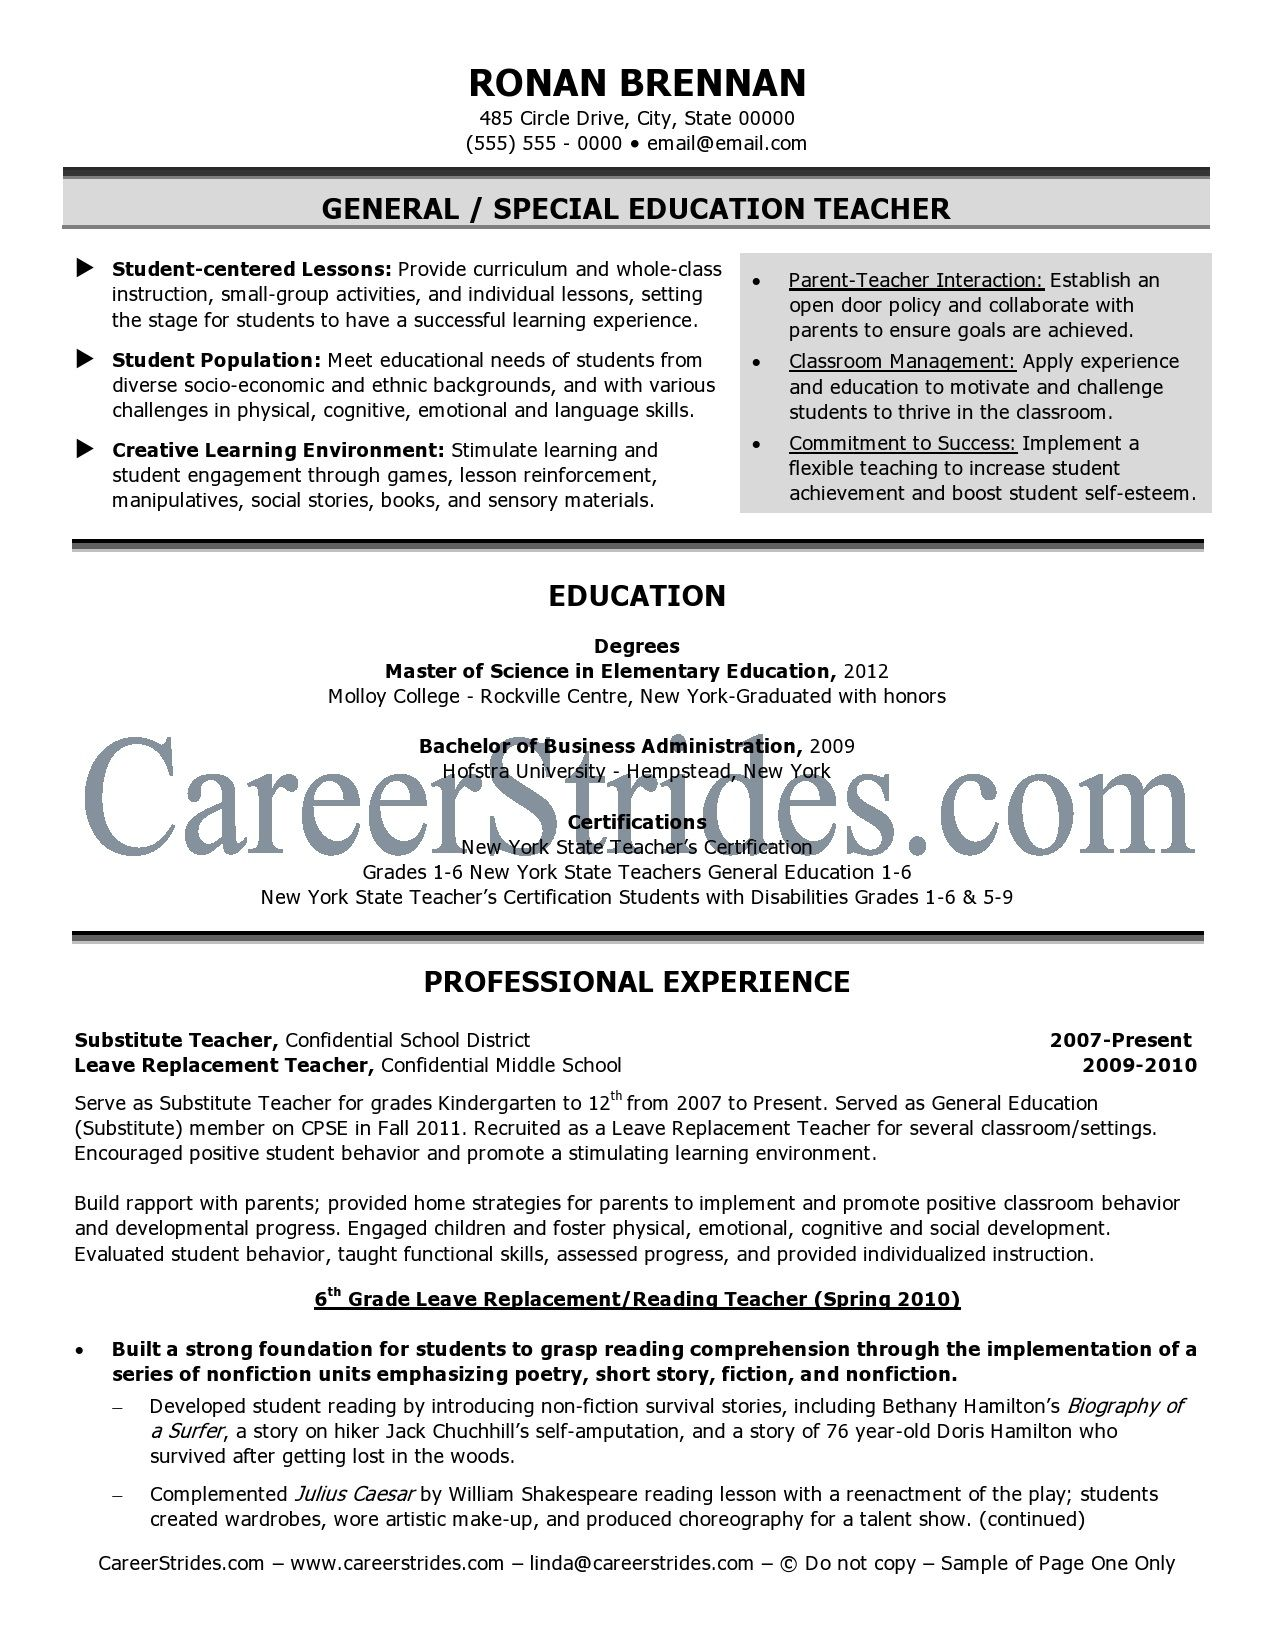 substitute teacher resume sample resumes examples for teachers - Resume For Substitute Teachers